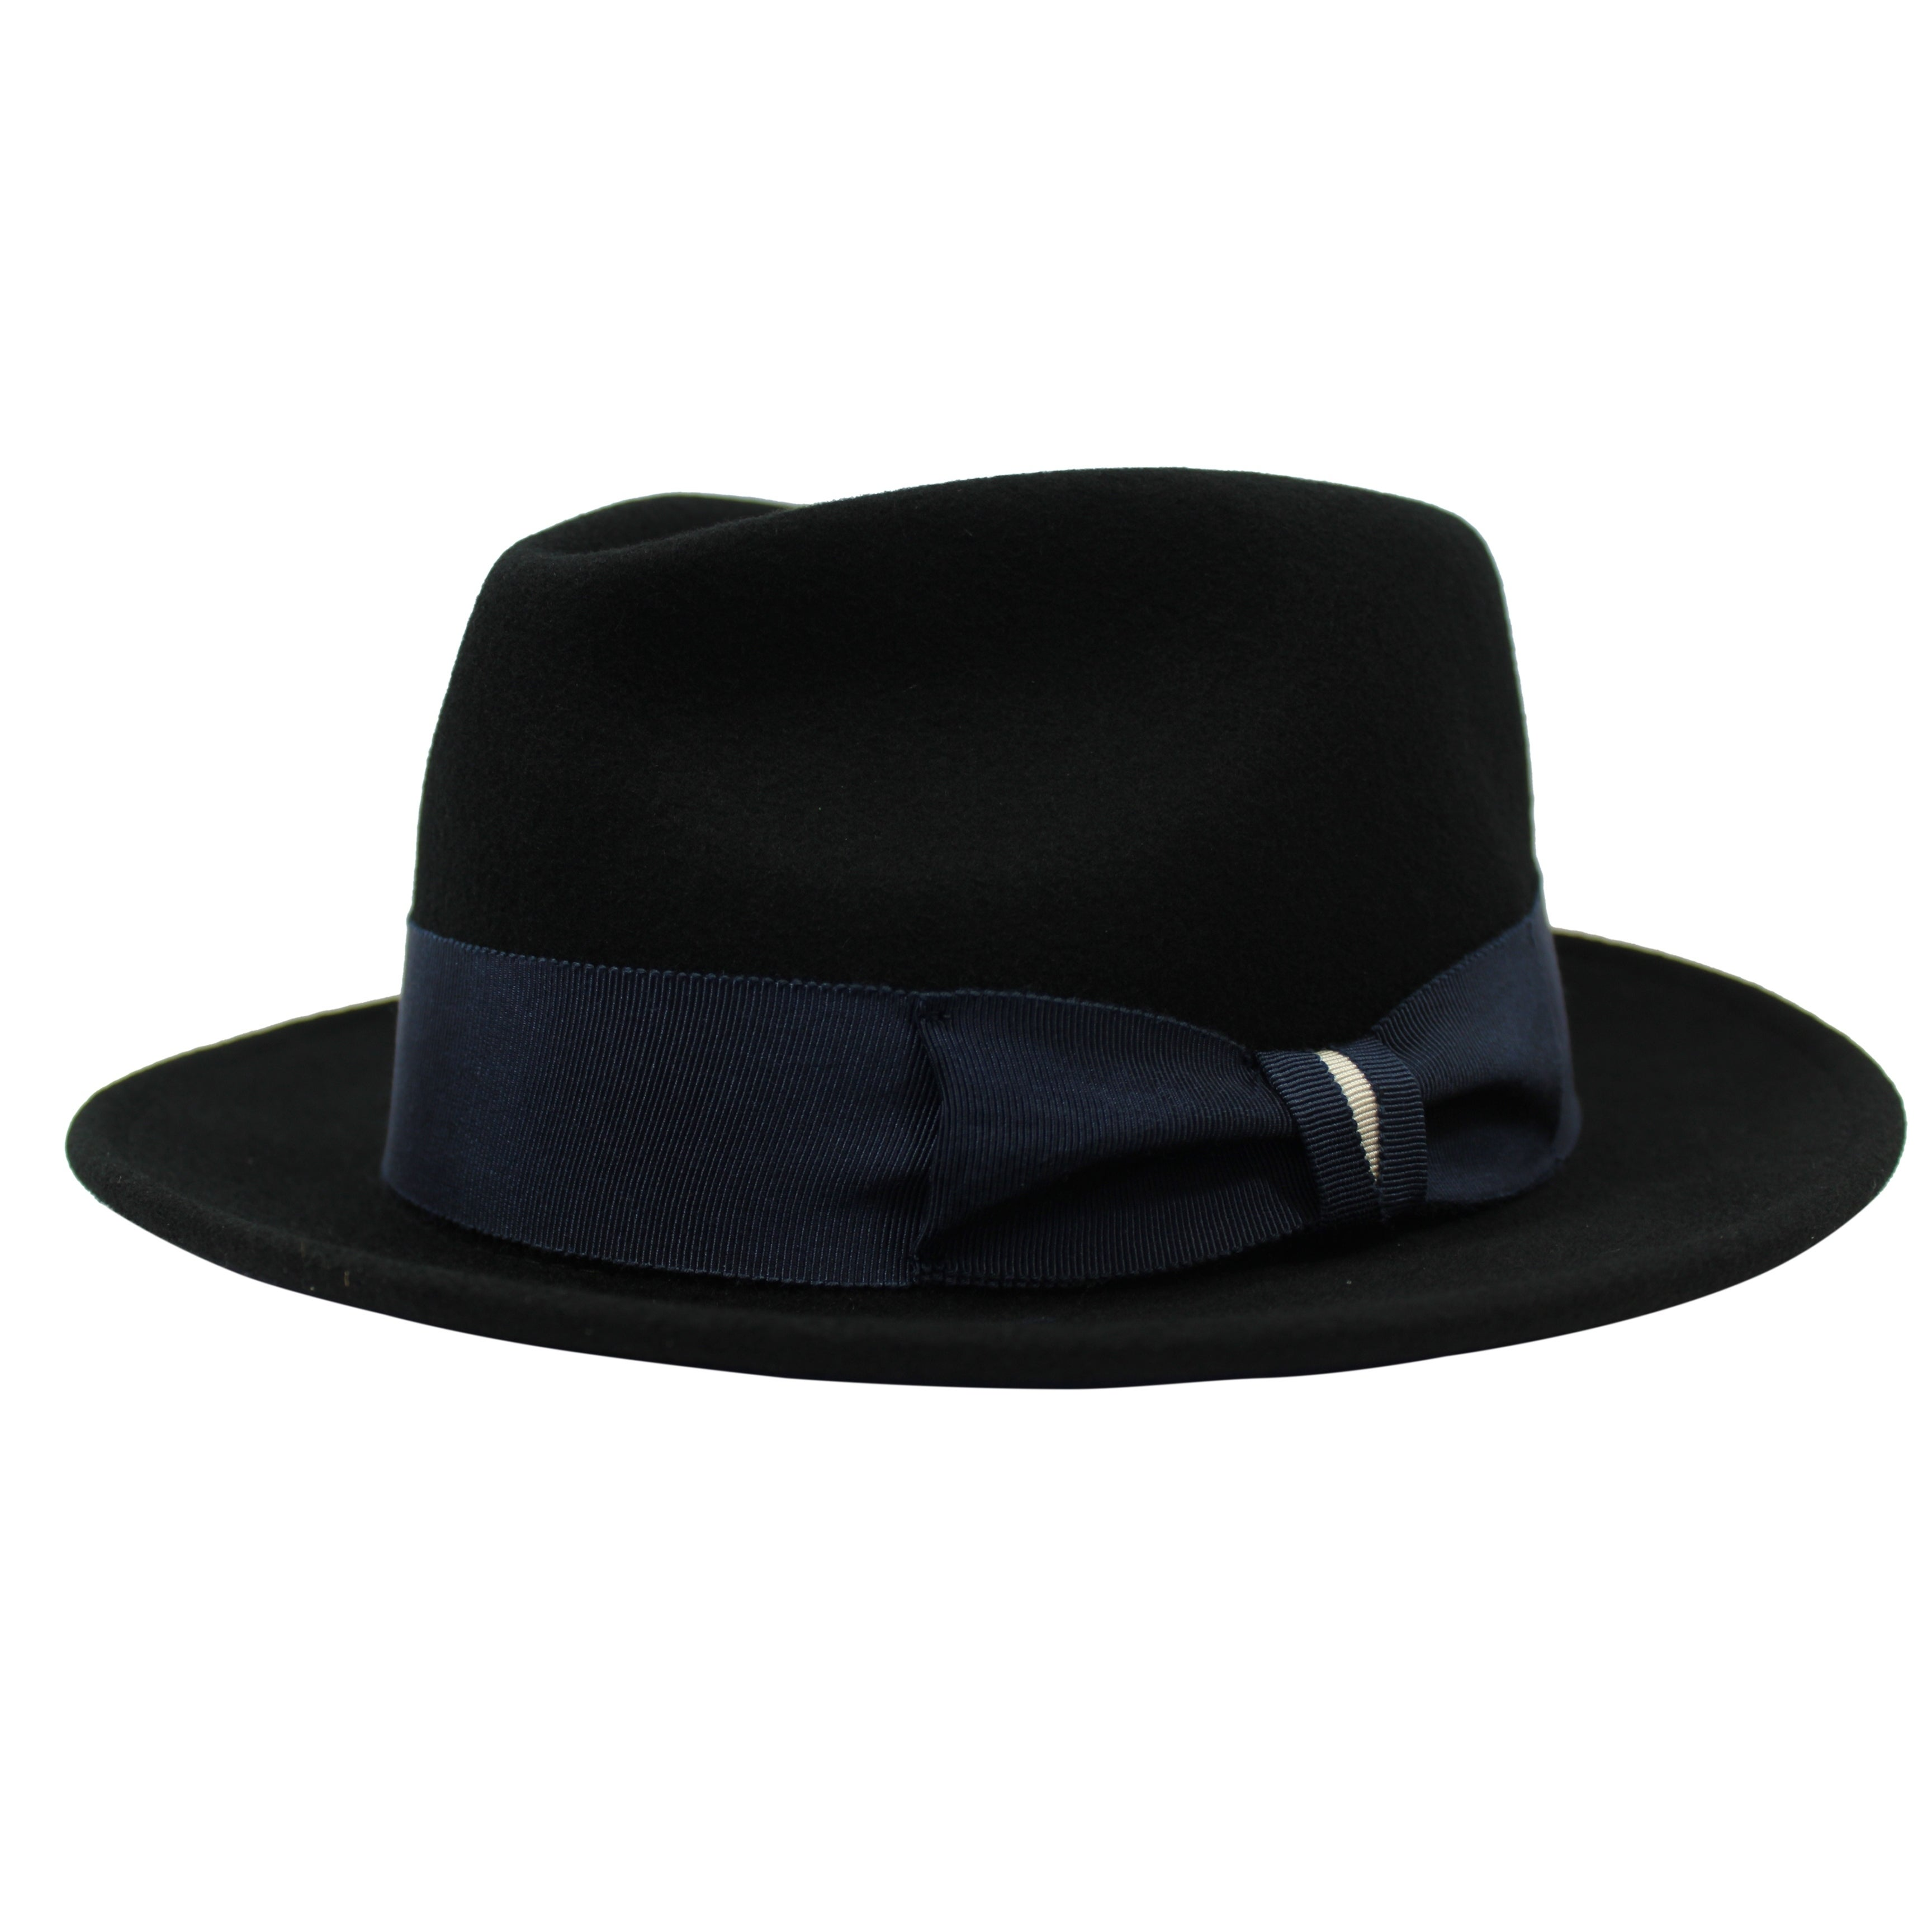 e2f350189ec6e Shop Russell - 100% Wool Felt Stingy Brim Trilby Fedora Style Felt Hat -  Free Shipping On Orders Over  45 - Overstock - 20743859